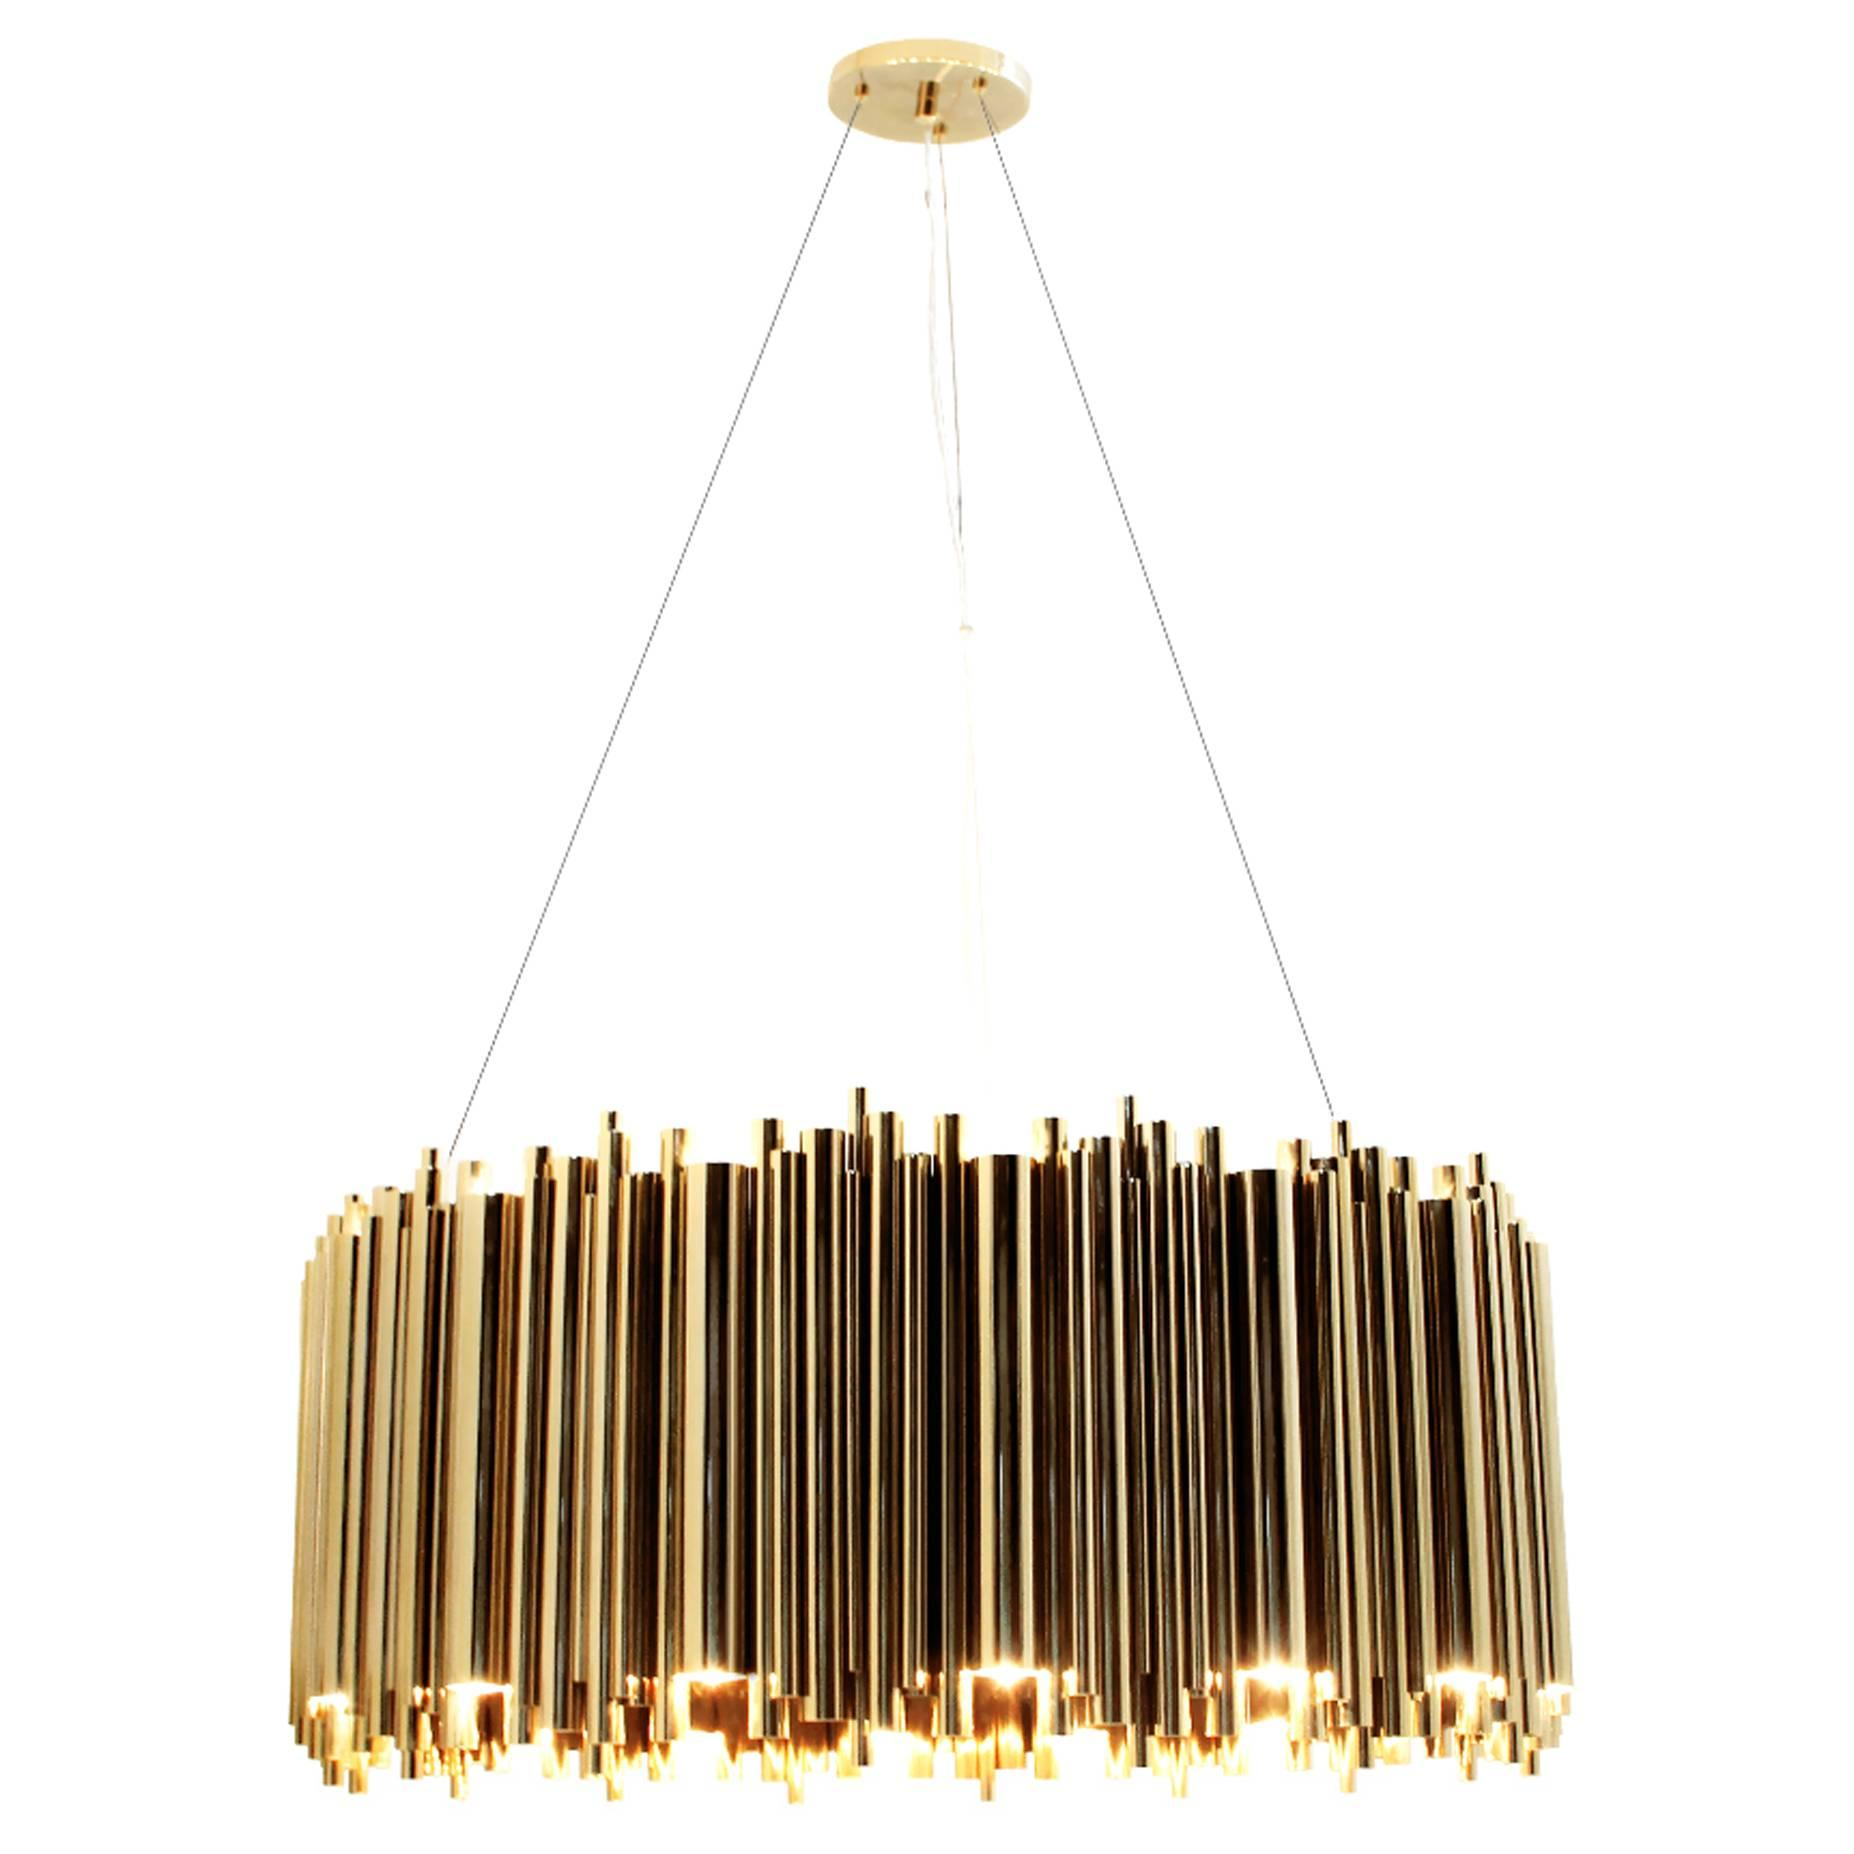 Have You Meet These Amazing Suspension Lamps Let Us Introduce To You 5 suspension lamps Have You Meet These Amazing Suspension Lamps? Let Us Introduce To You Have You Meet These Amazing Suspension Lamps Let Us Introduce To You 5